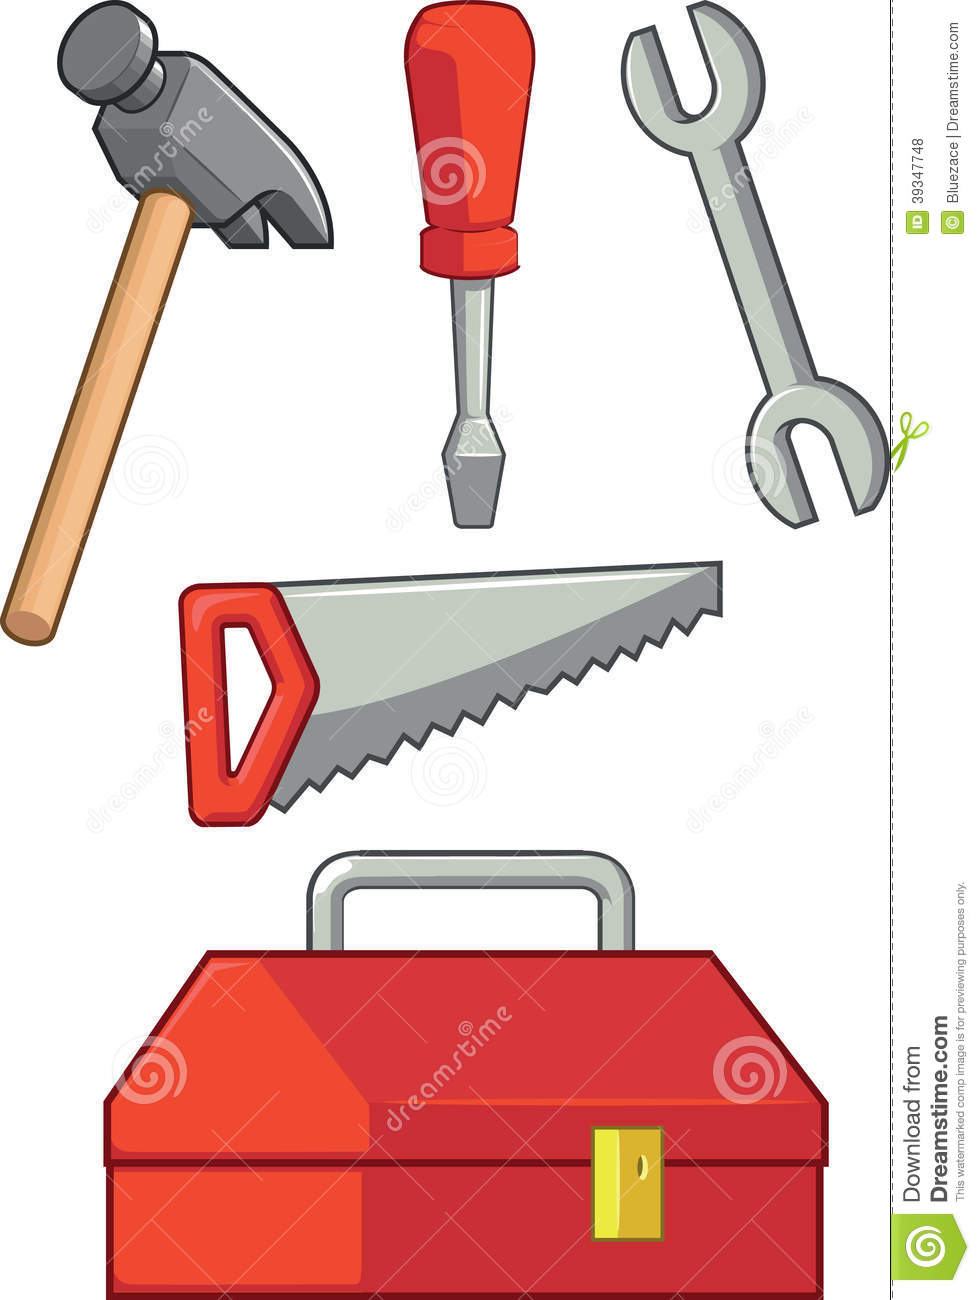 Hand Tool - Hammer, Screwdriver, Wrench, Saw & Too Stock ...